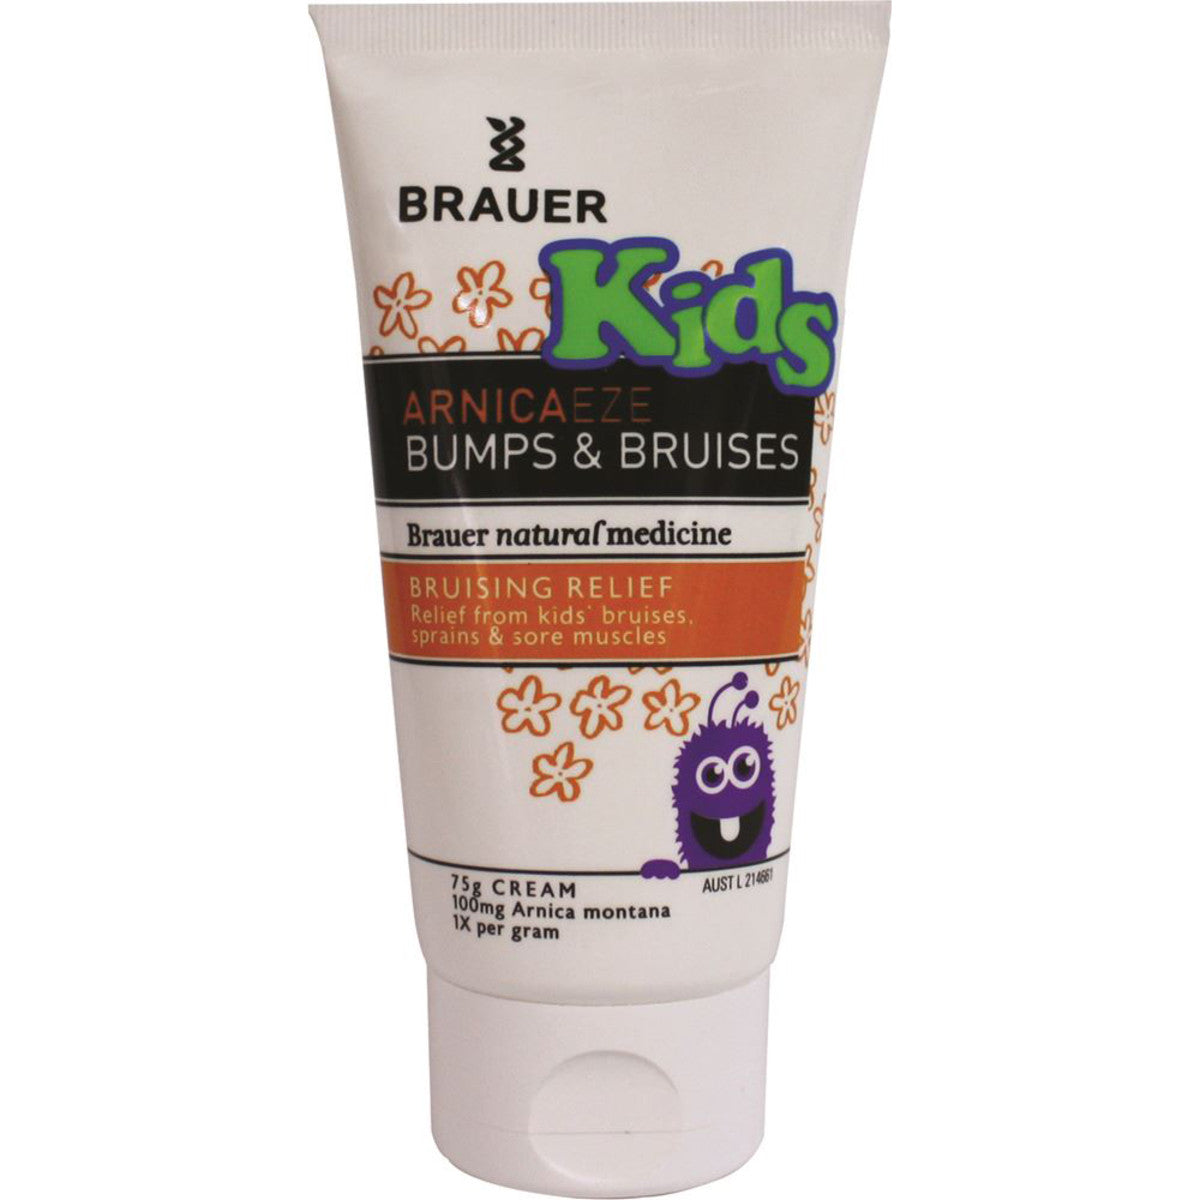 Brauer arnicaeze kids bumps bruises 75g cream - Bathroom items that start with g ...